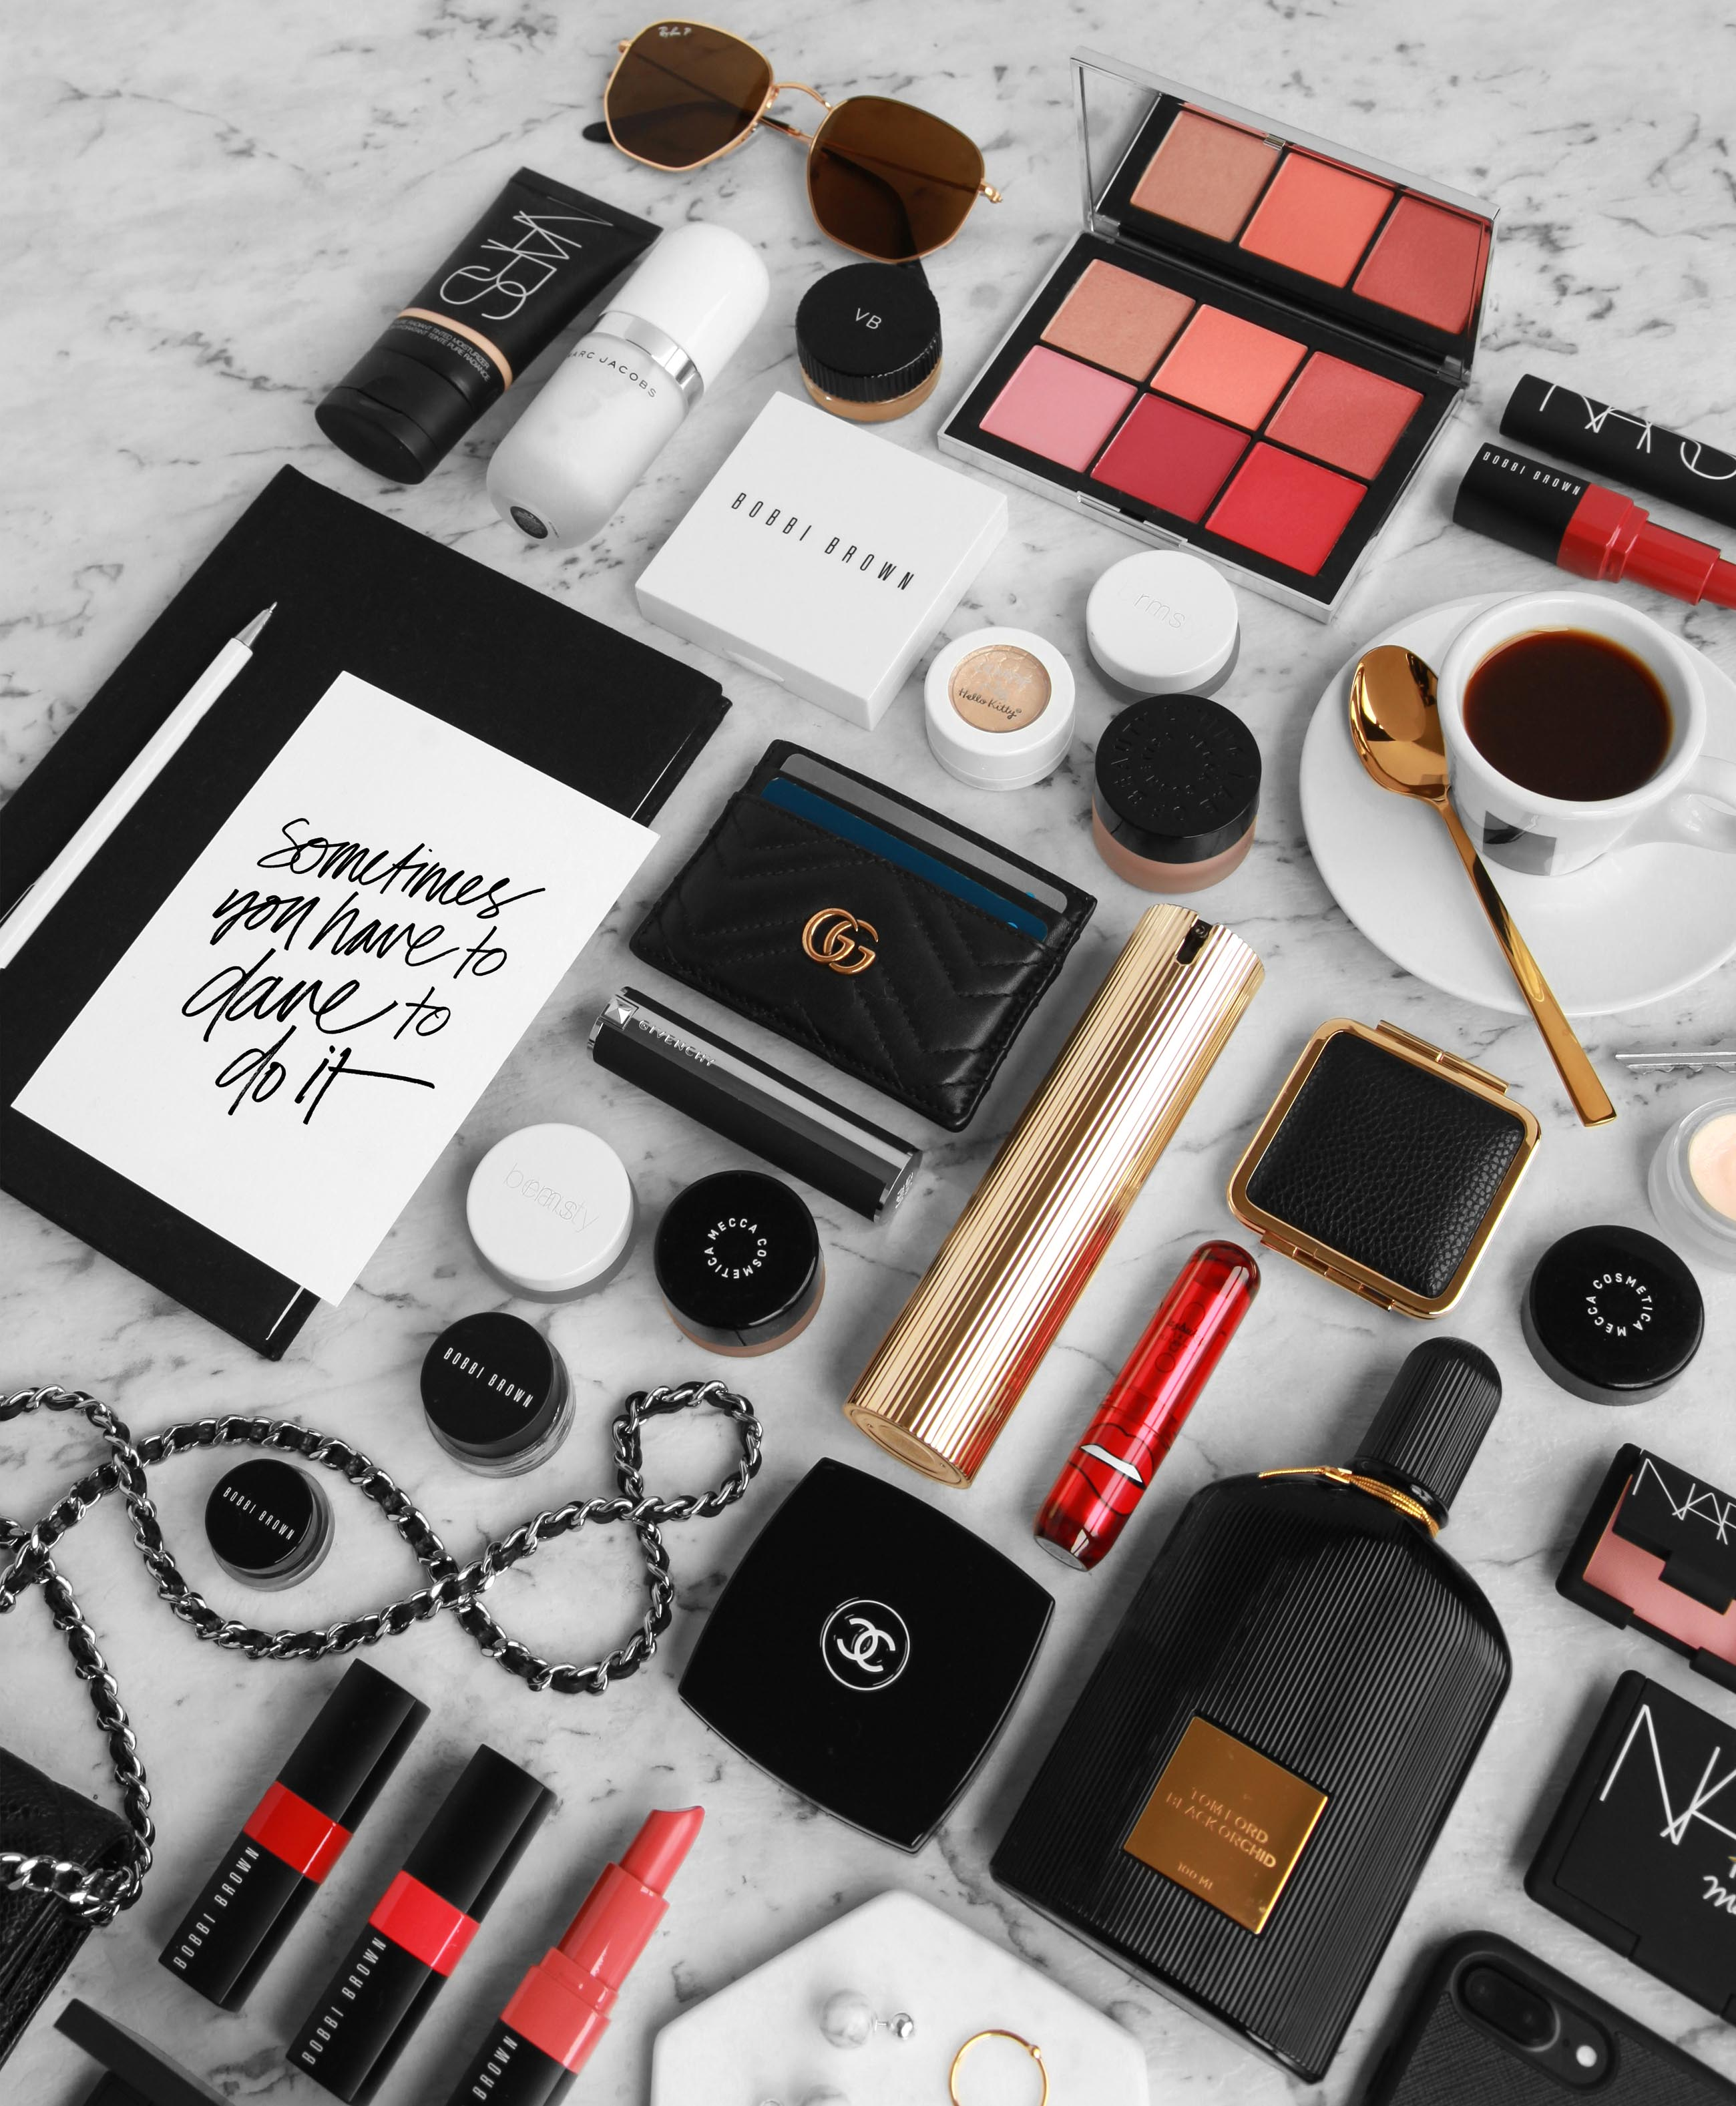 How to construct a flatlay - design by aikonik 1